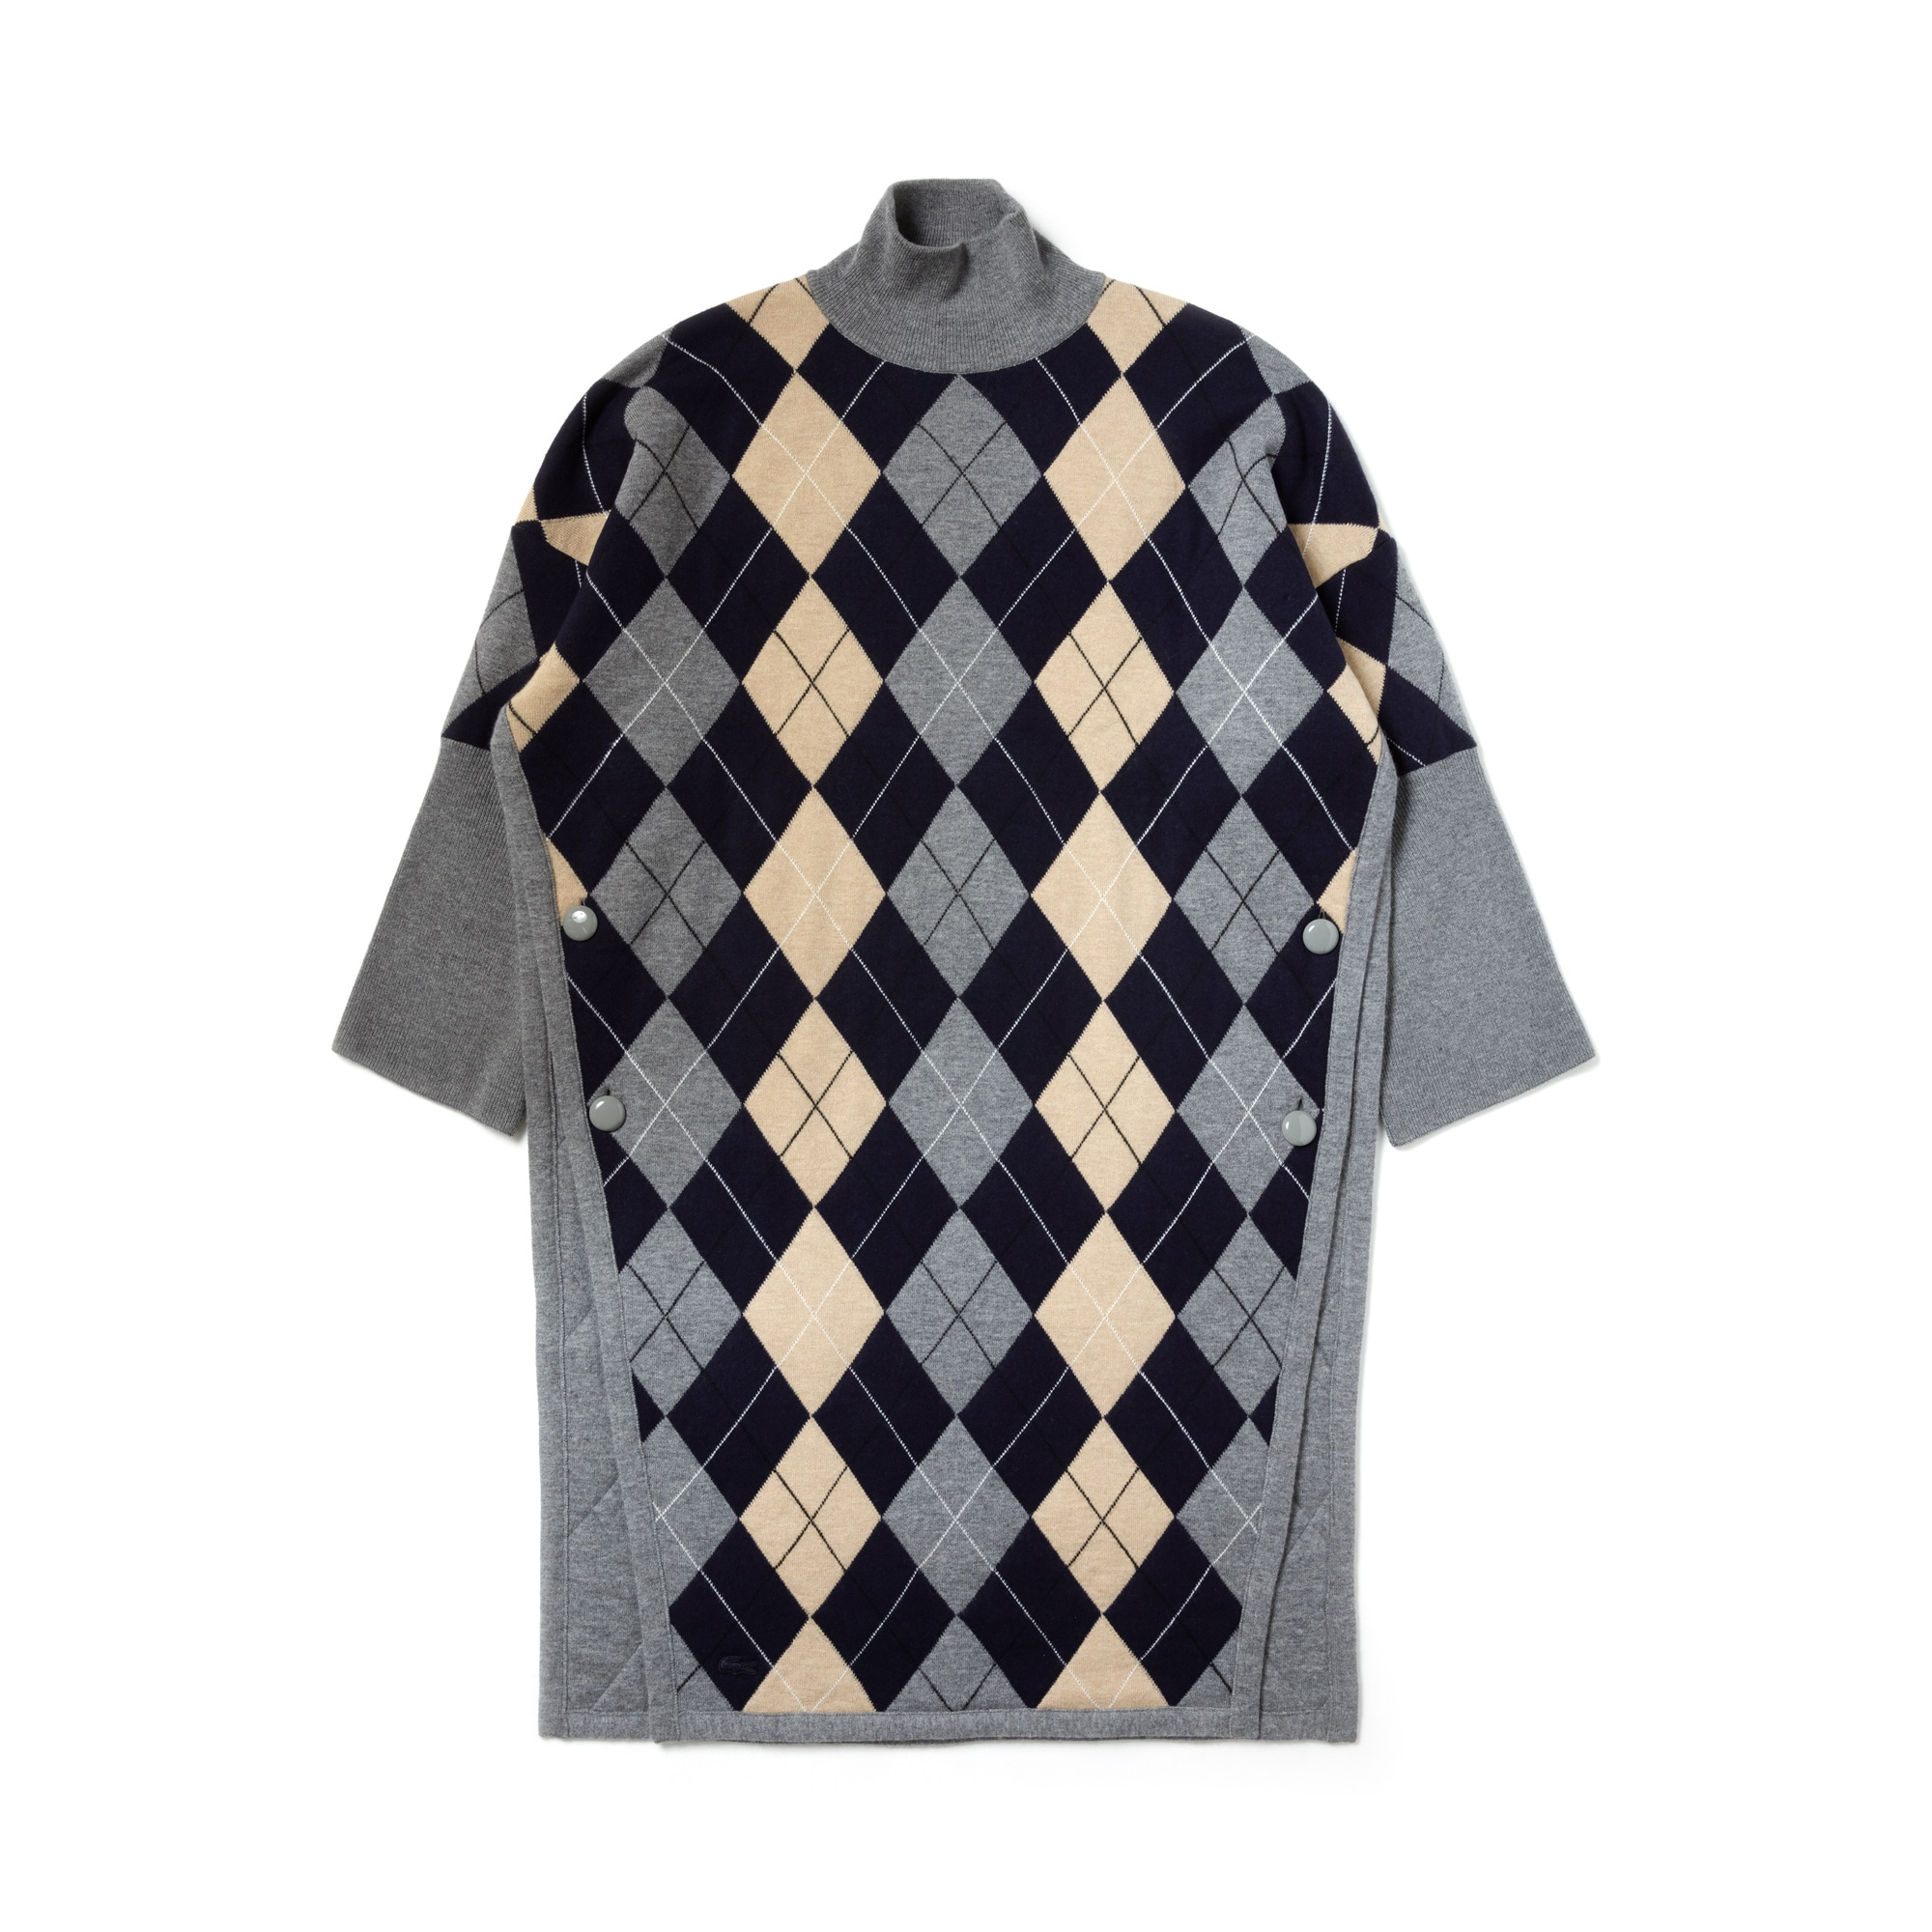 Women's Fashion Show Argyle Wool Jacquard Poncho Dress